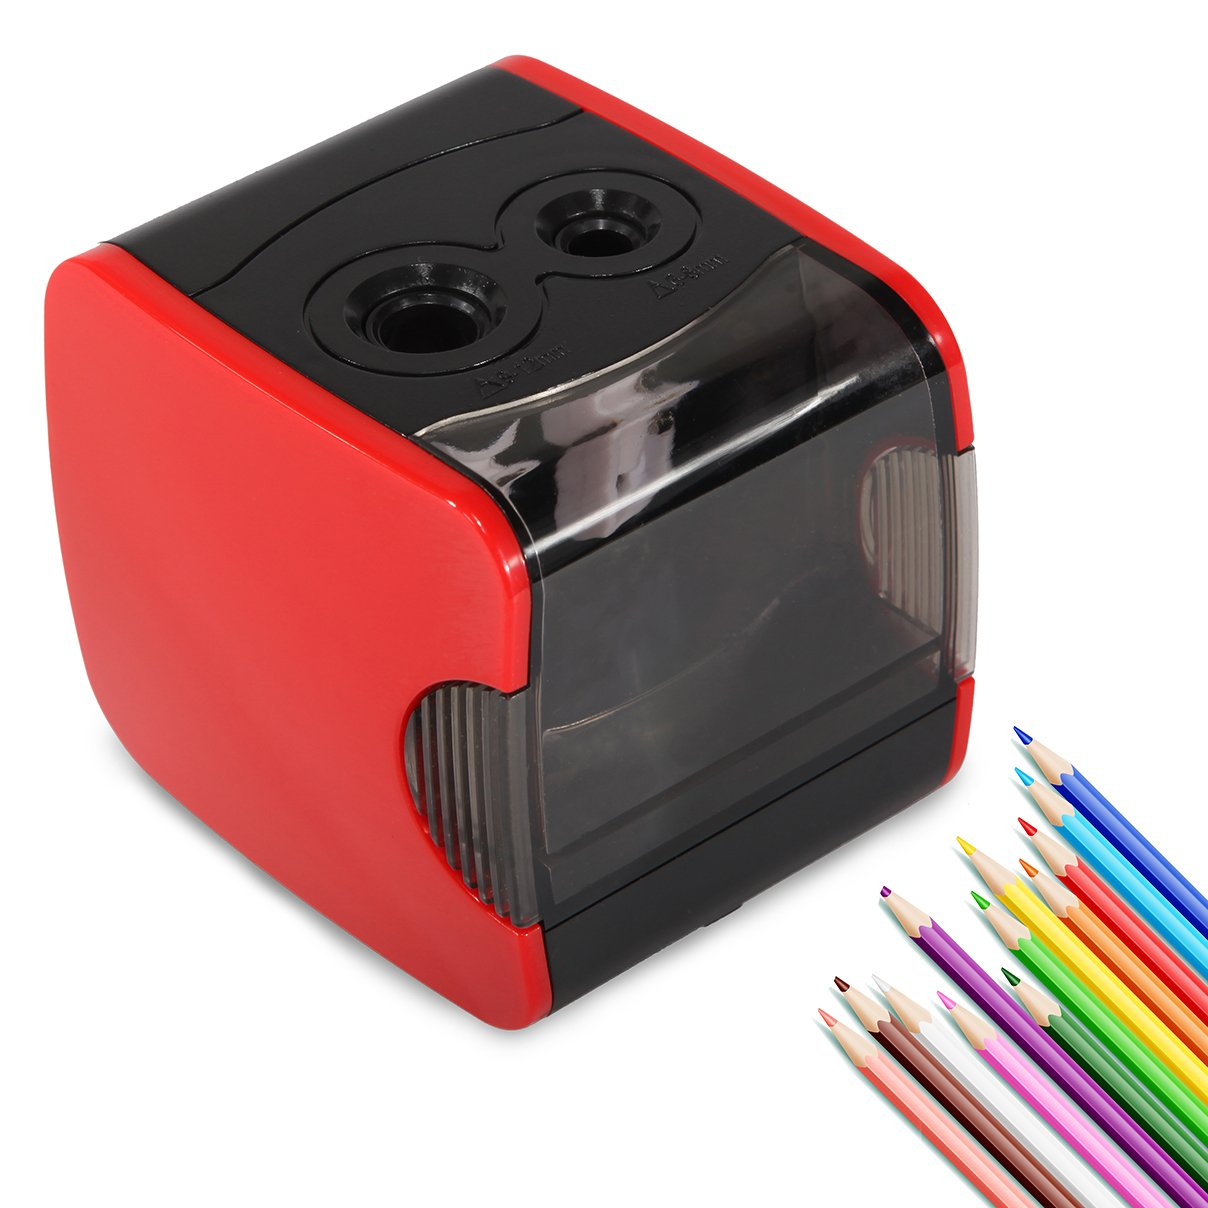 DCLYSI Electric Pencil Sharpener,Heavy Duty Automatic Pencil Sharpeners Electric USB or Battery Operated Small Pencil Sharpener for Kids, Artist, Student and Office by DCLYSI